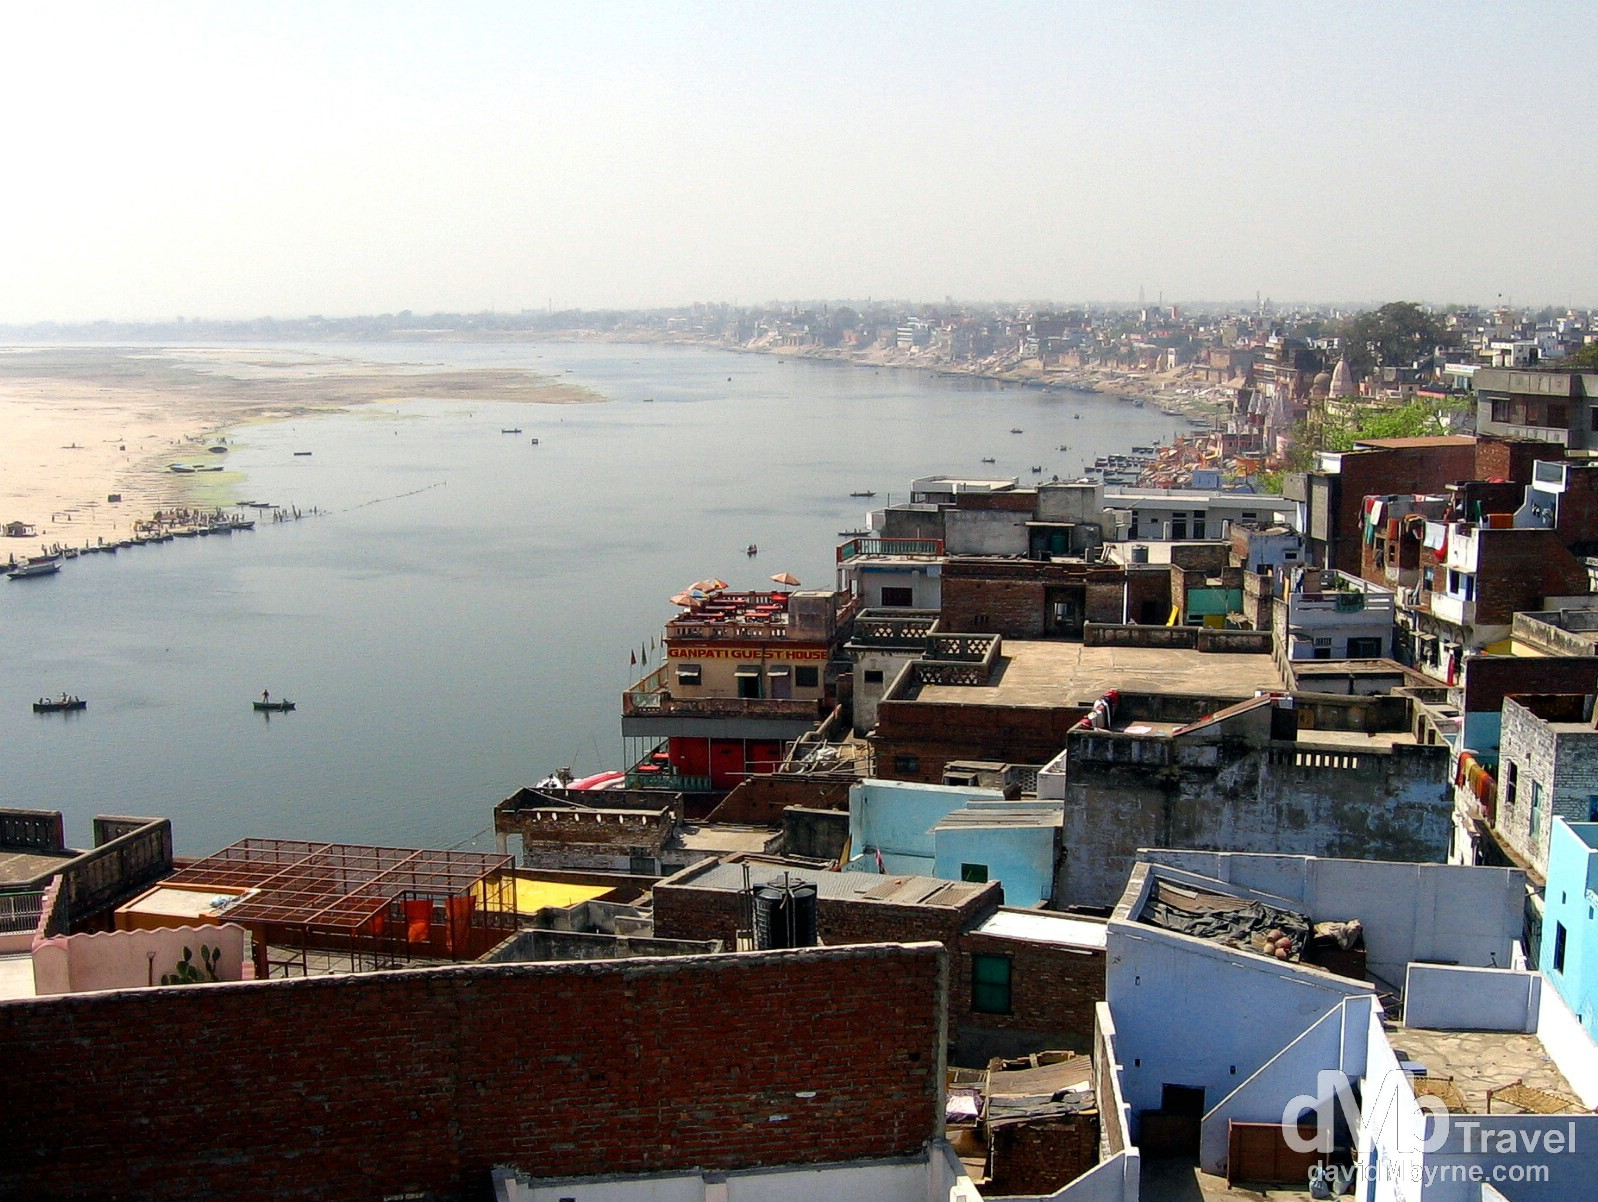 A view of Varanasi and the sacred River Ganges from the rooftop of the Puja guesthouse. Varanasi, Uttar Pradesh, India. March 17, 2008.